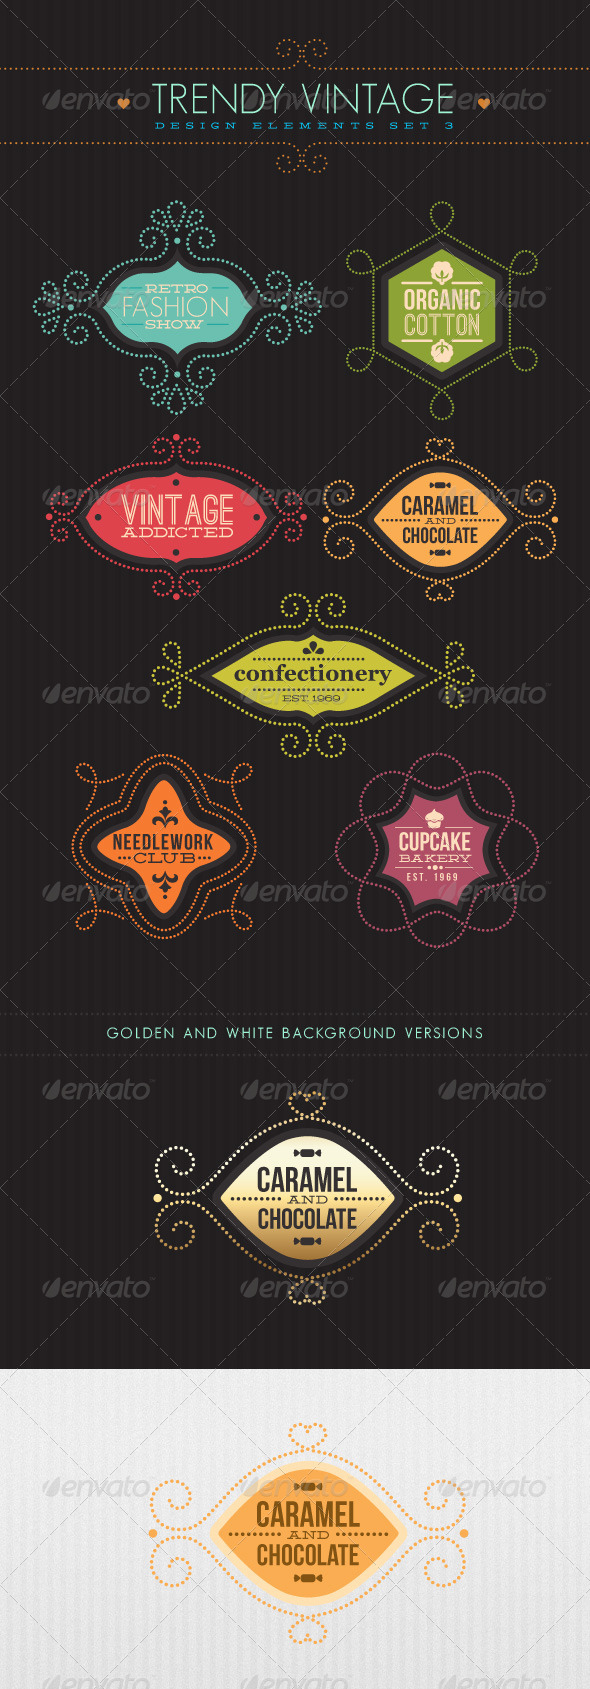 GraphicRiver Trendy Vintage Vector Design Elements Set 3 2285311